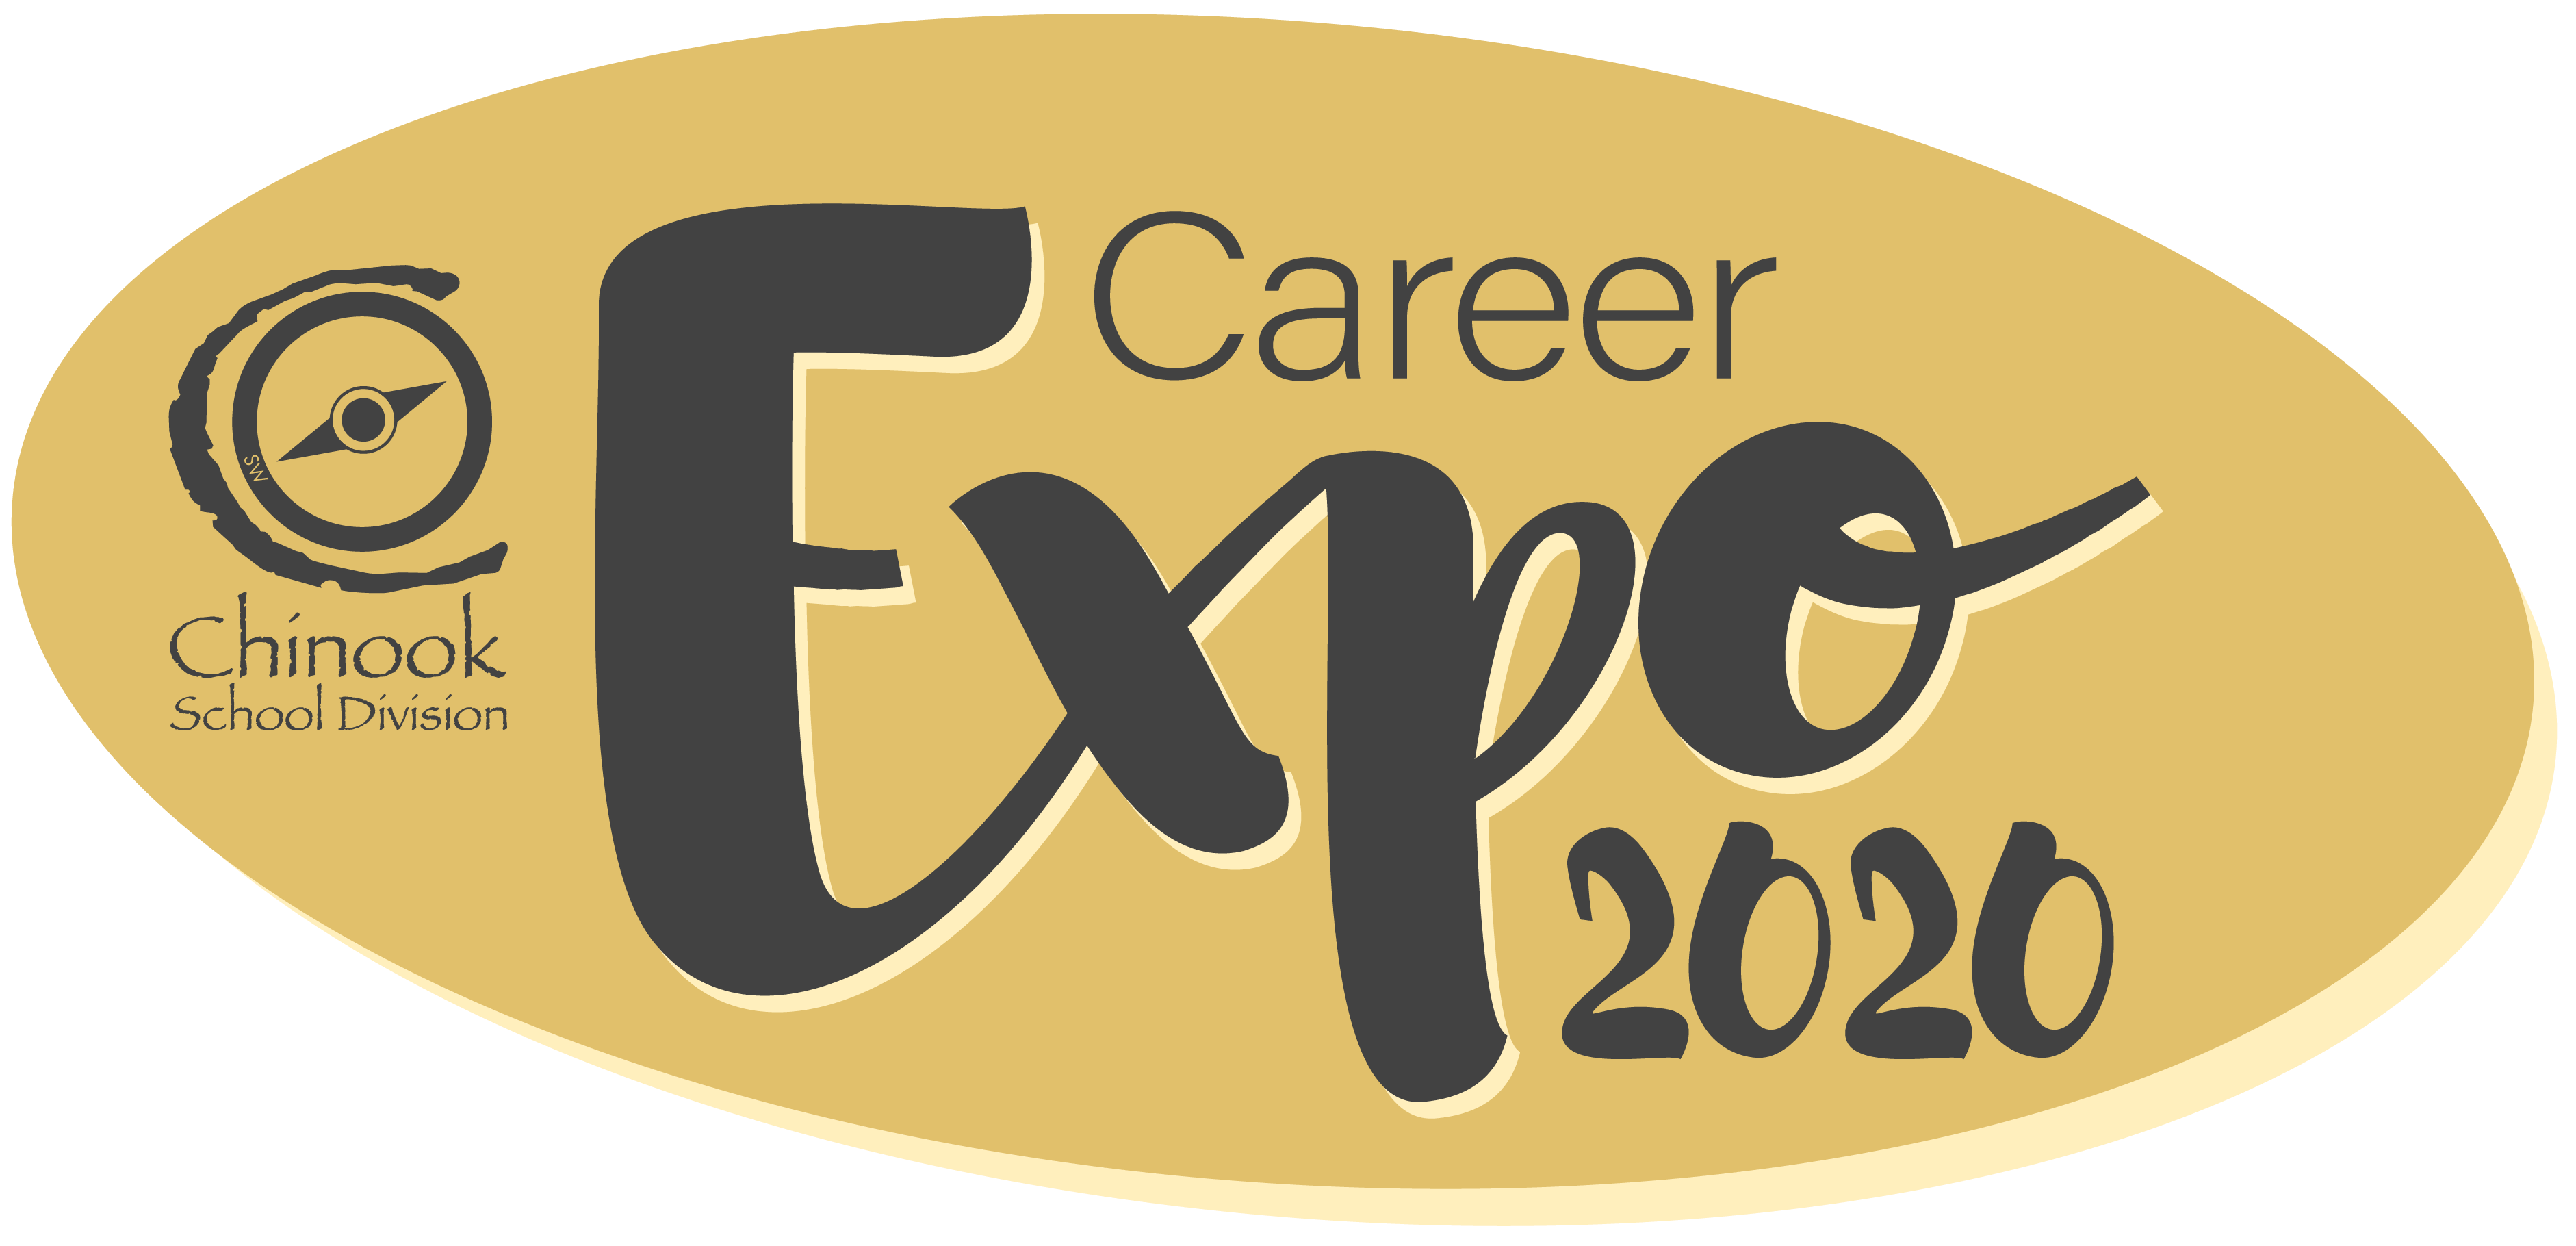 Career Expo 2020 LOGO-01.png